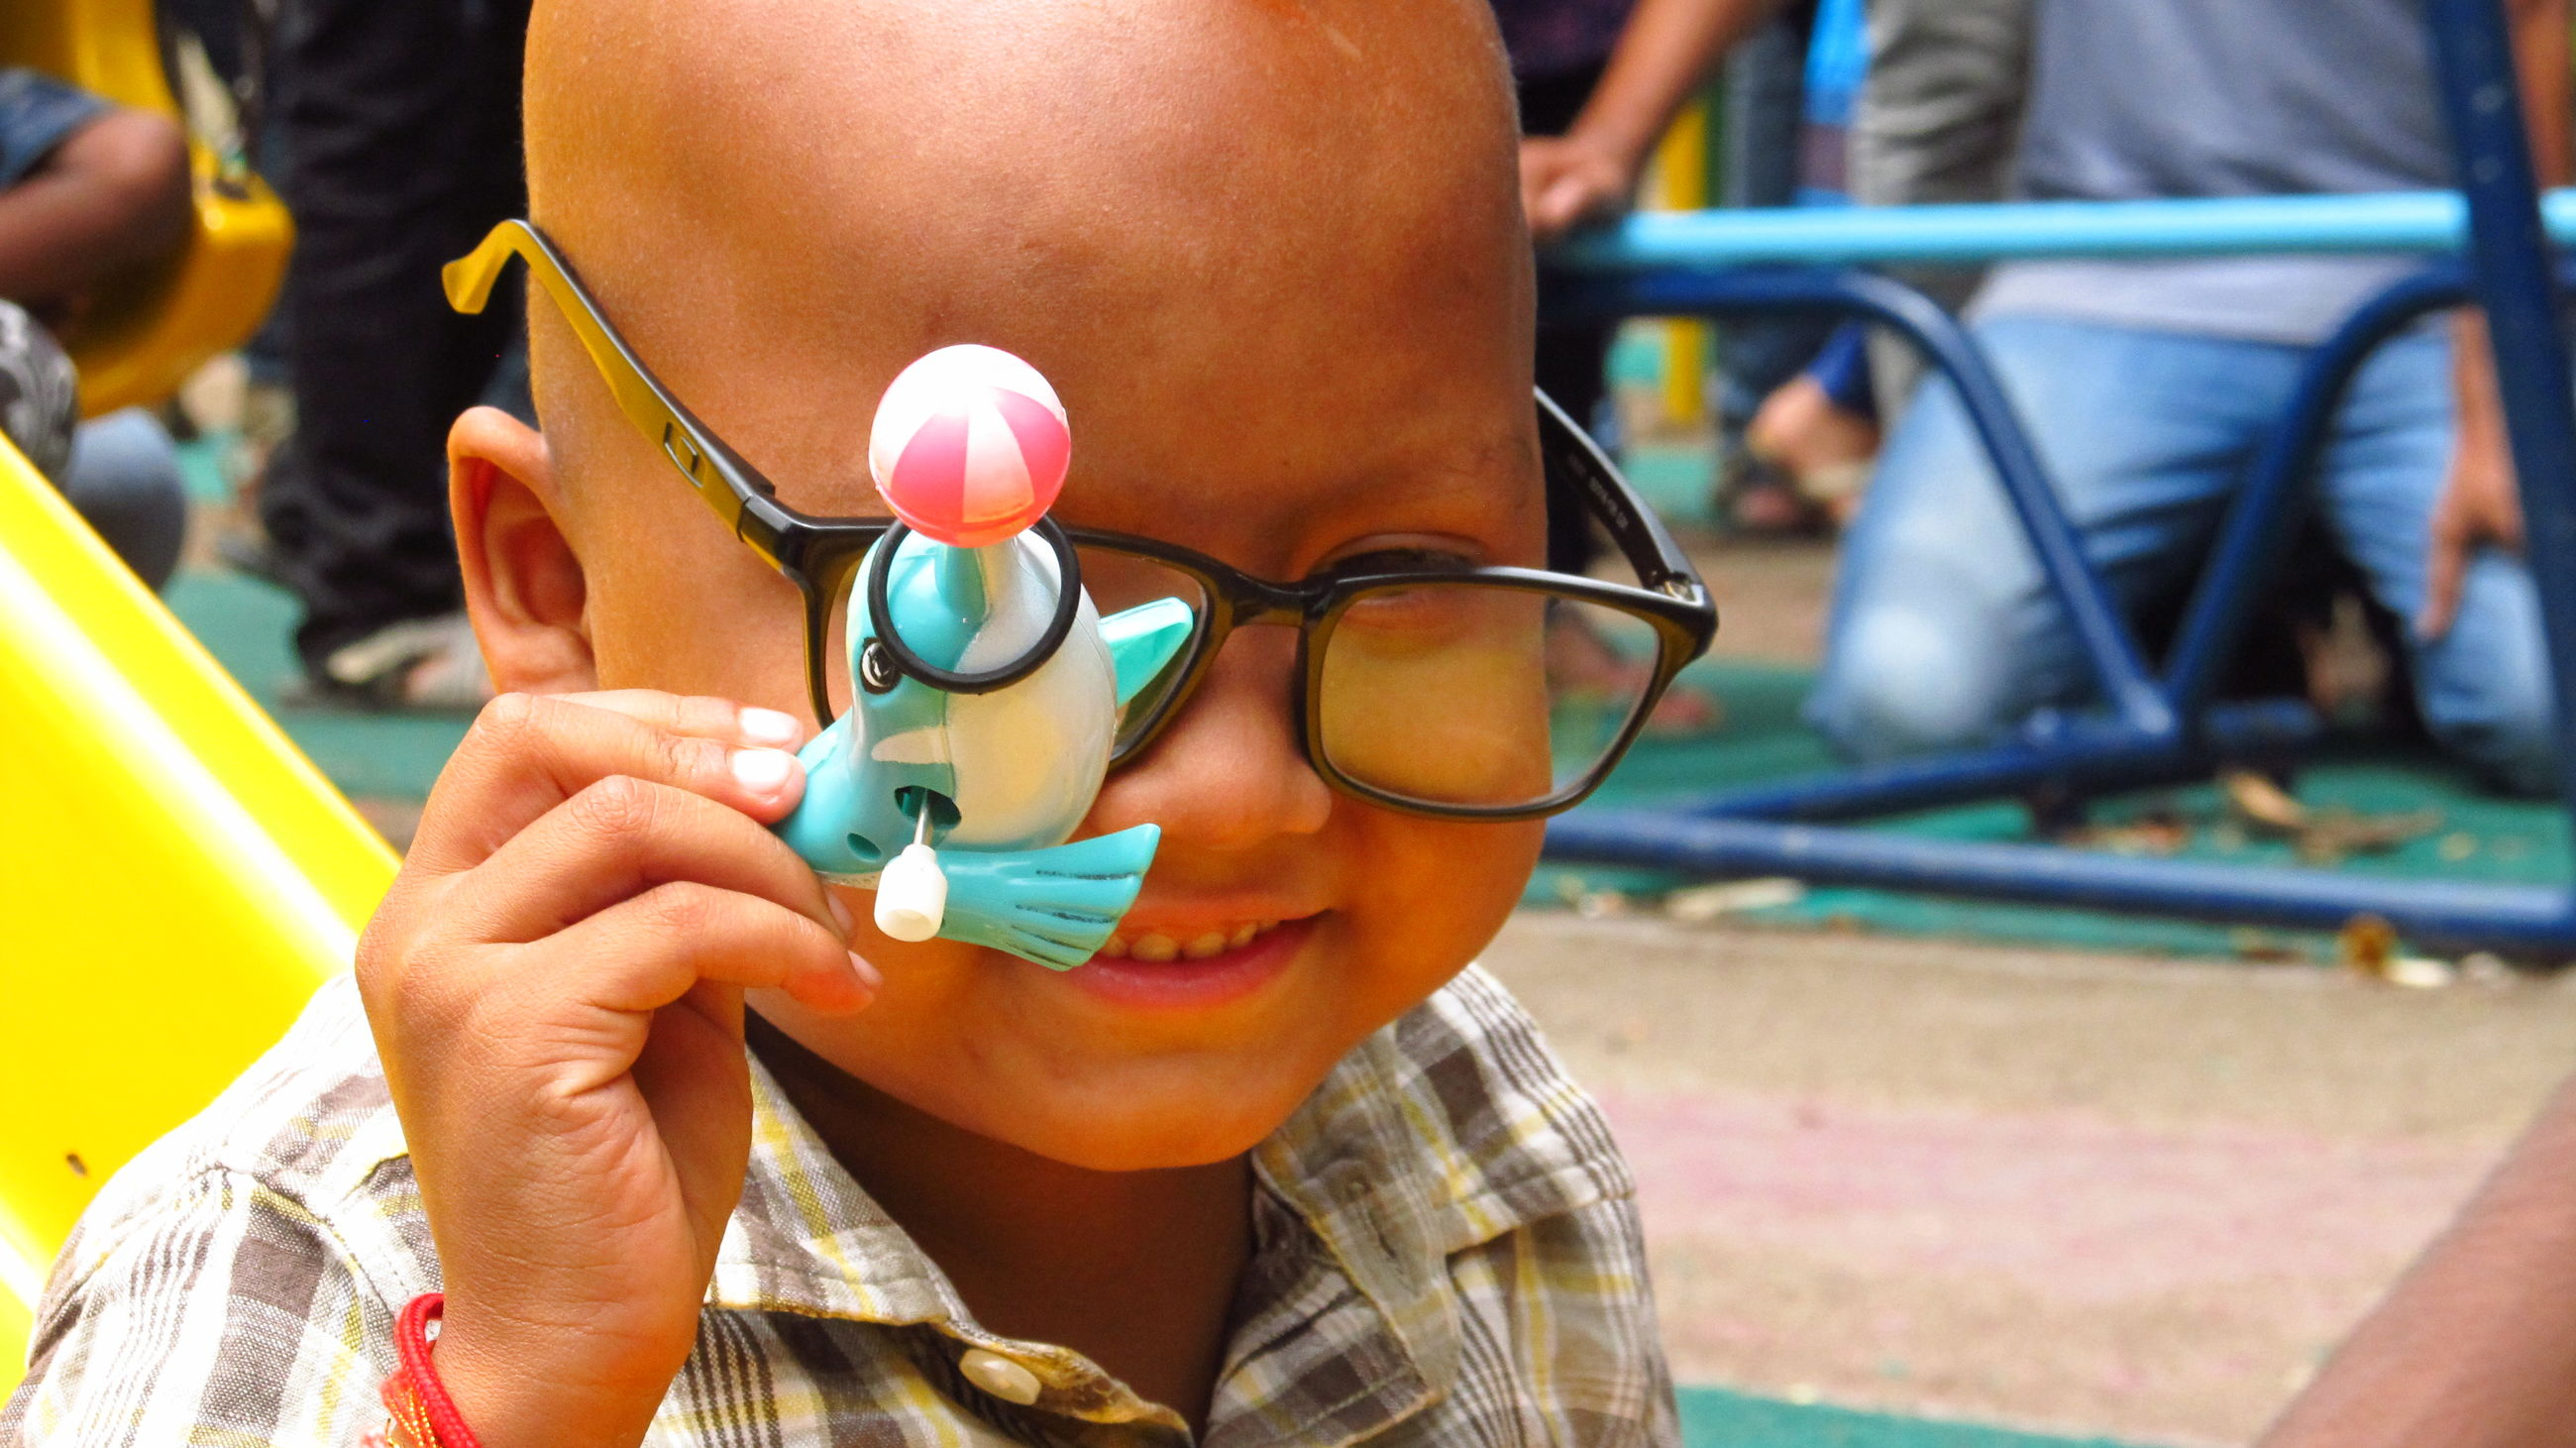 focus on foreground, leisure activity, lifestyles, headshot, holding, close-up, sunglasses, front view, person, carefree